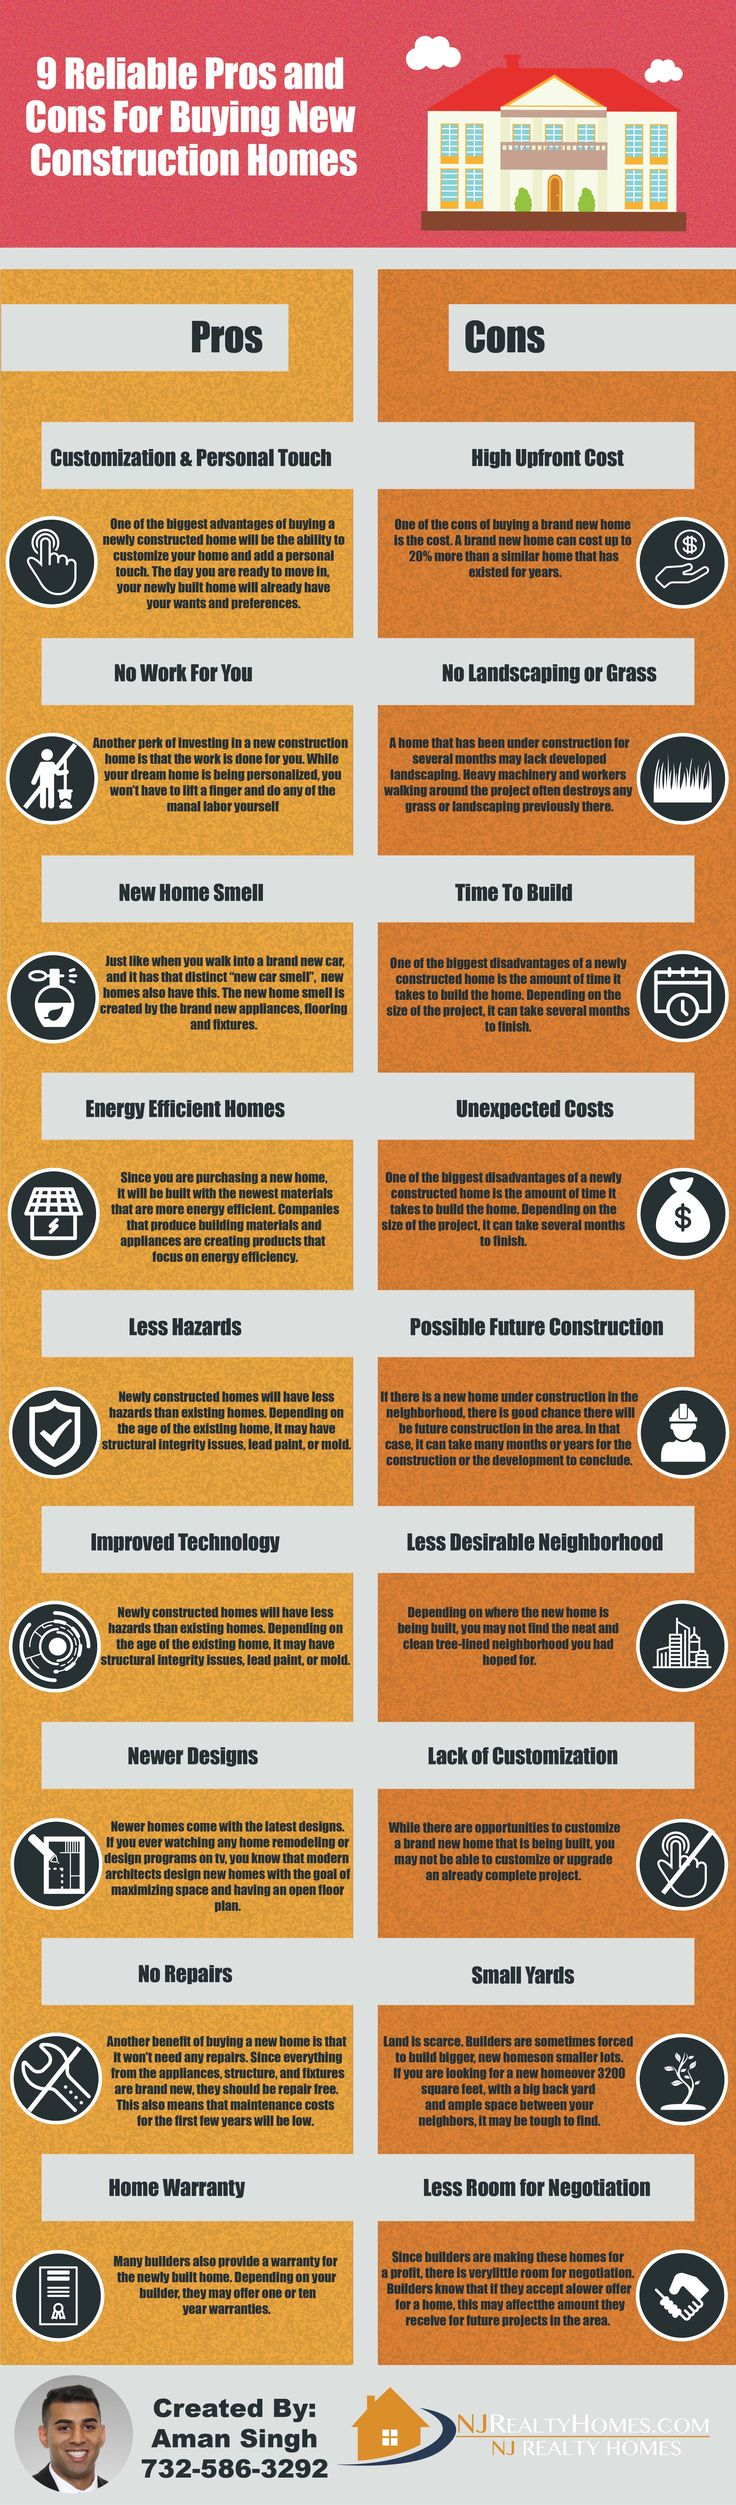 PROS & CONS For Buying A New Construction Home - http://www.njrealtyhomes.com/blog/9-reliable-pros-and-cons-for-buying-new-construction-homes-infographic.html